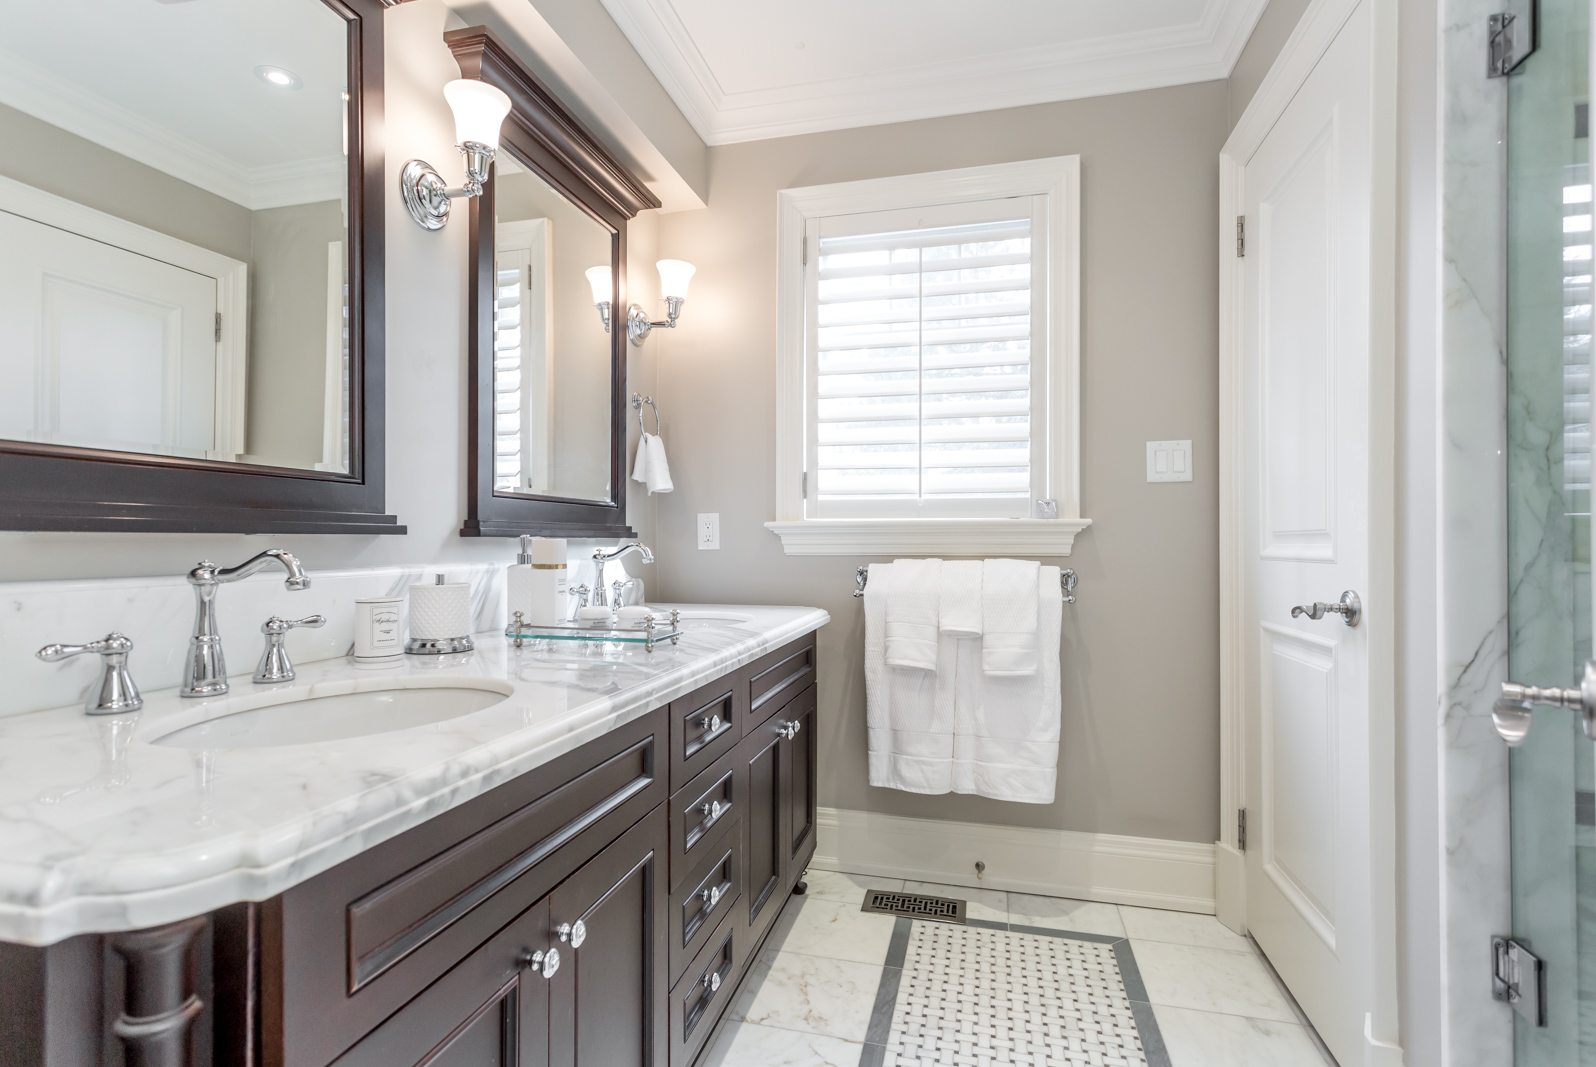 toronto-condo-for-sale-317-lonsdale-road-9